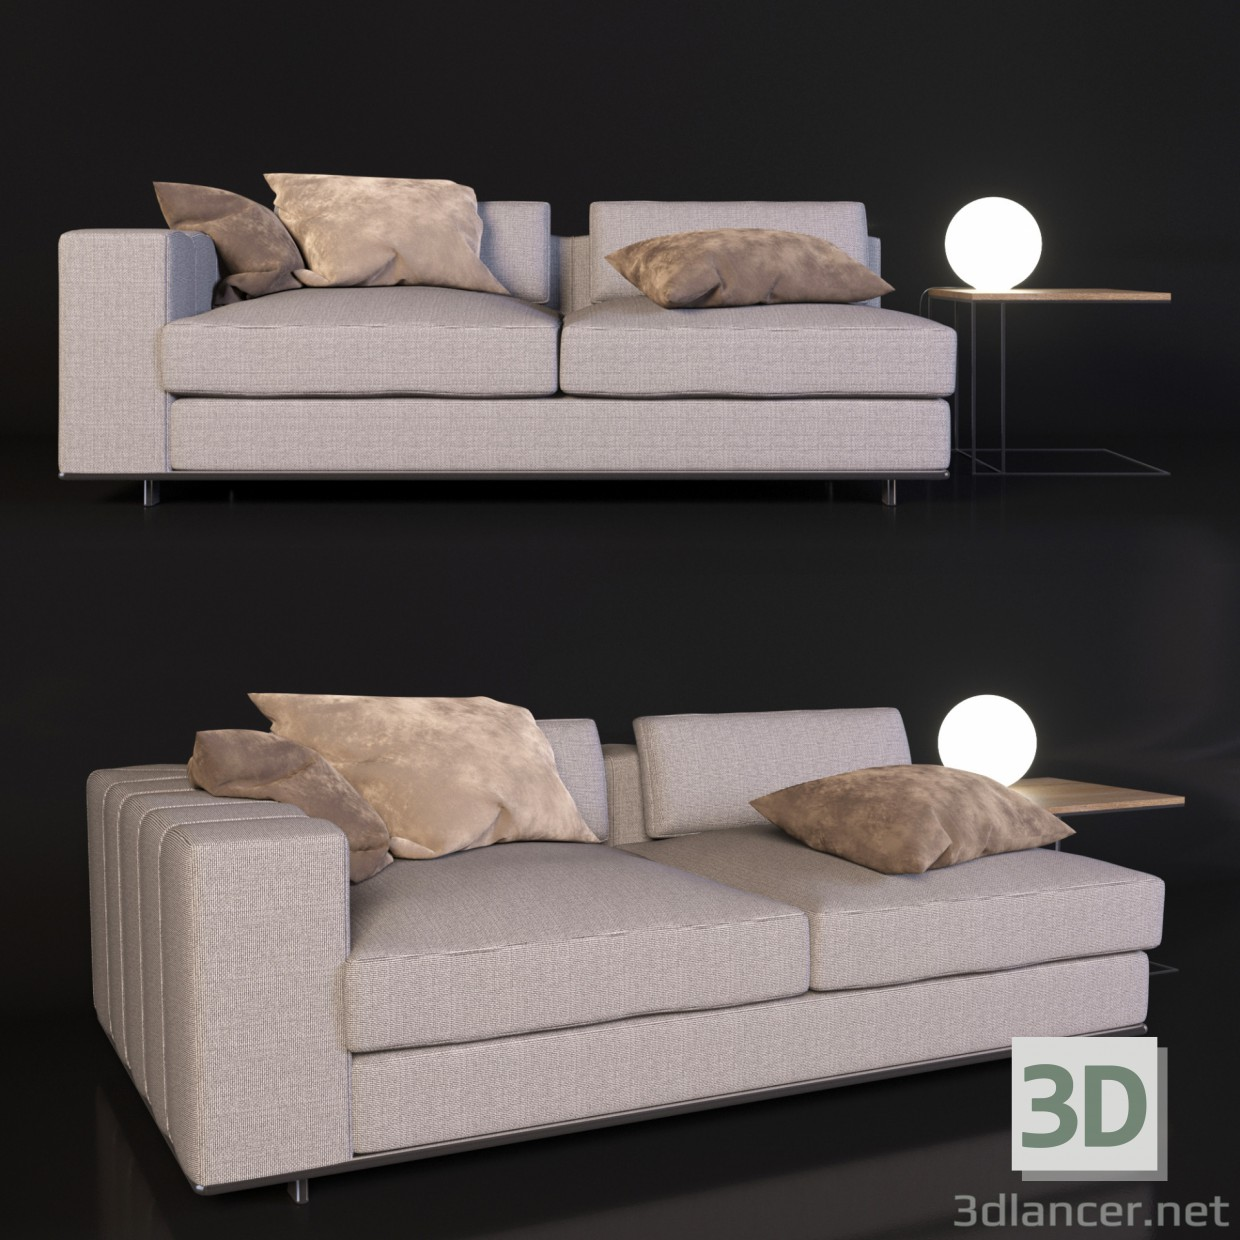 Full Size of Minotti Sofa 3d Model Stoff Grau Mondo Kissen Walter Knoll Mit Bettfunktion 2er Hocker Lagerverkauf Megapol Esstisch Wk Garnitur 2 Teilig Ebay Blau W Schillig Sofa Minotti Sofa